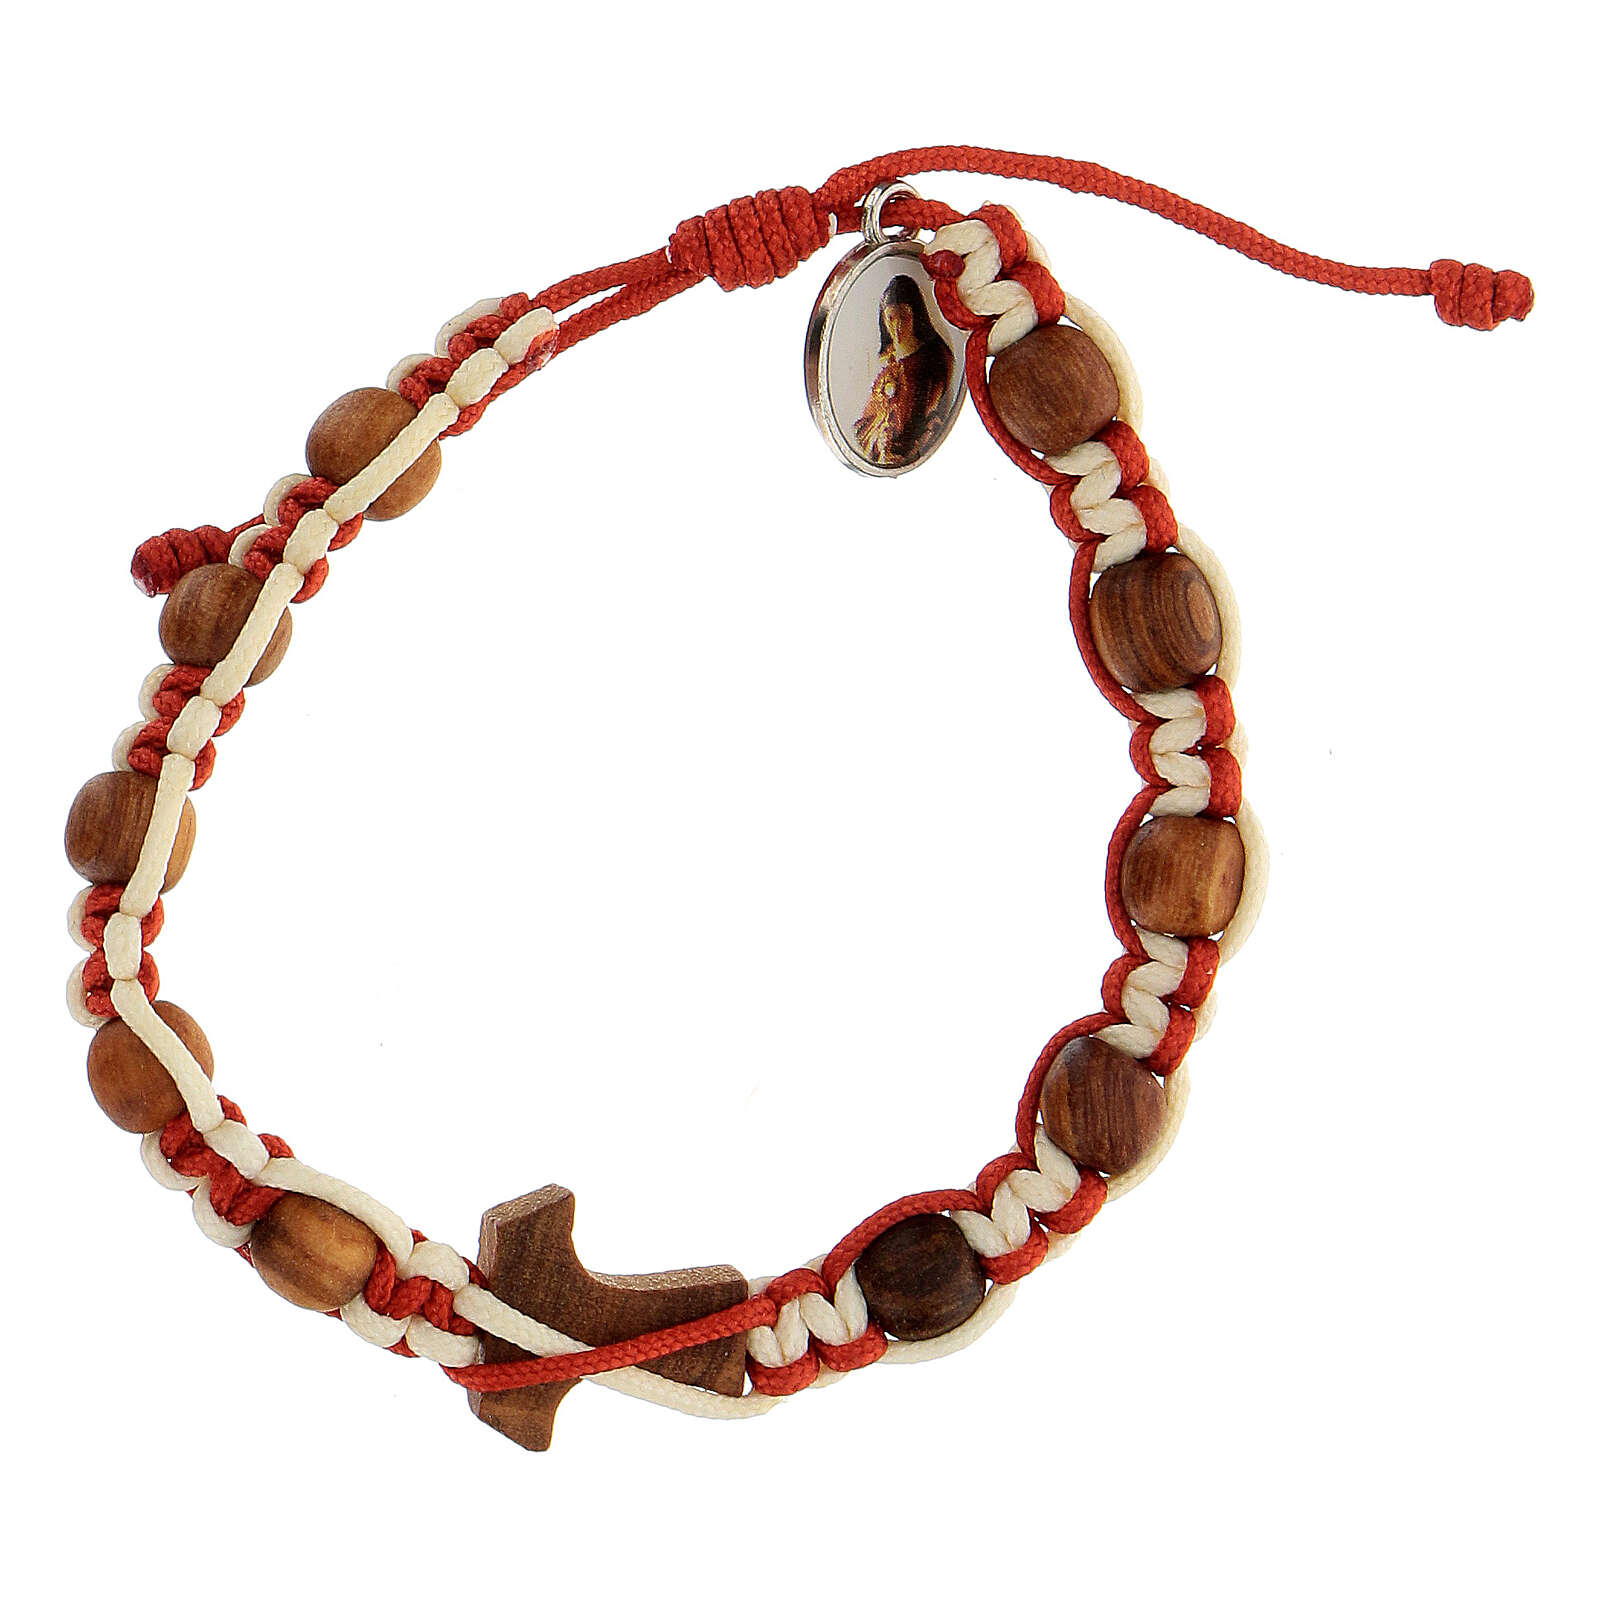 Bracelet Medjugorje child cross tau two-tone white and red rope  4